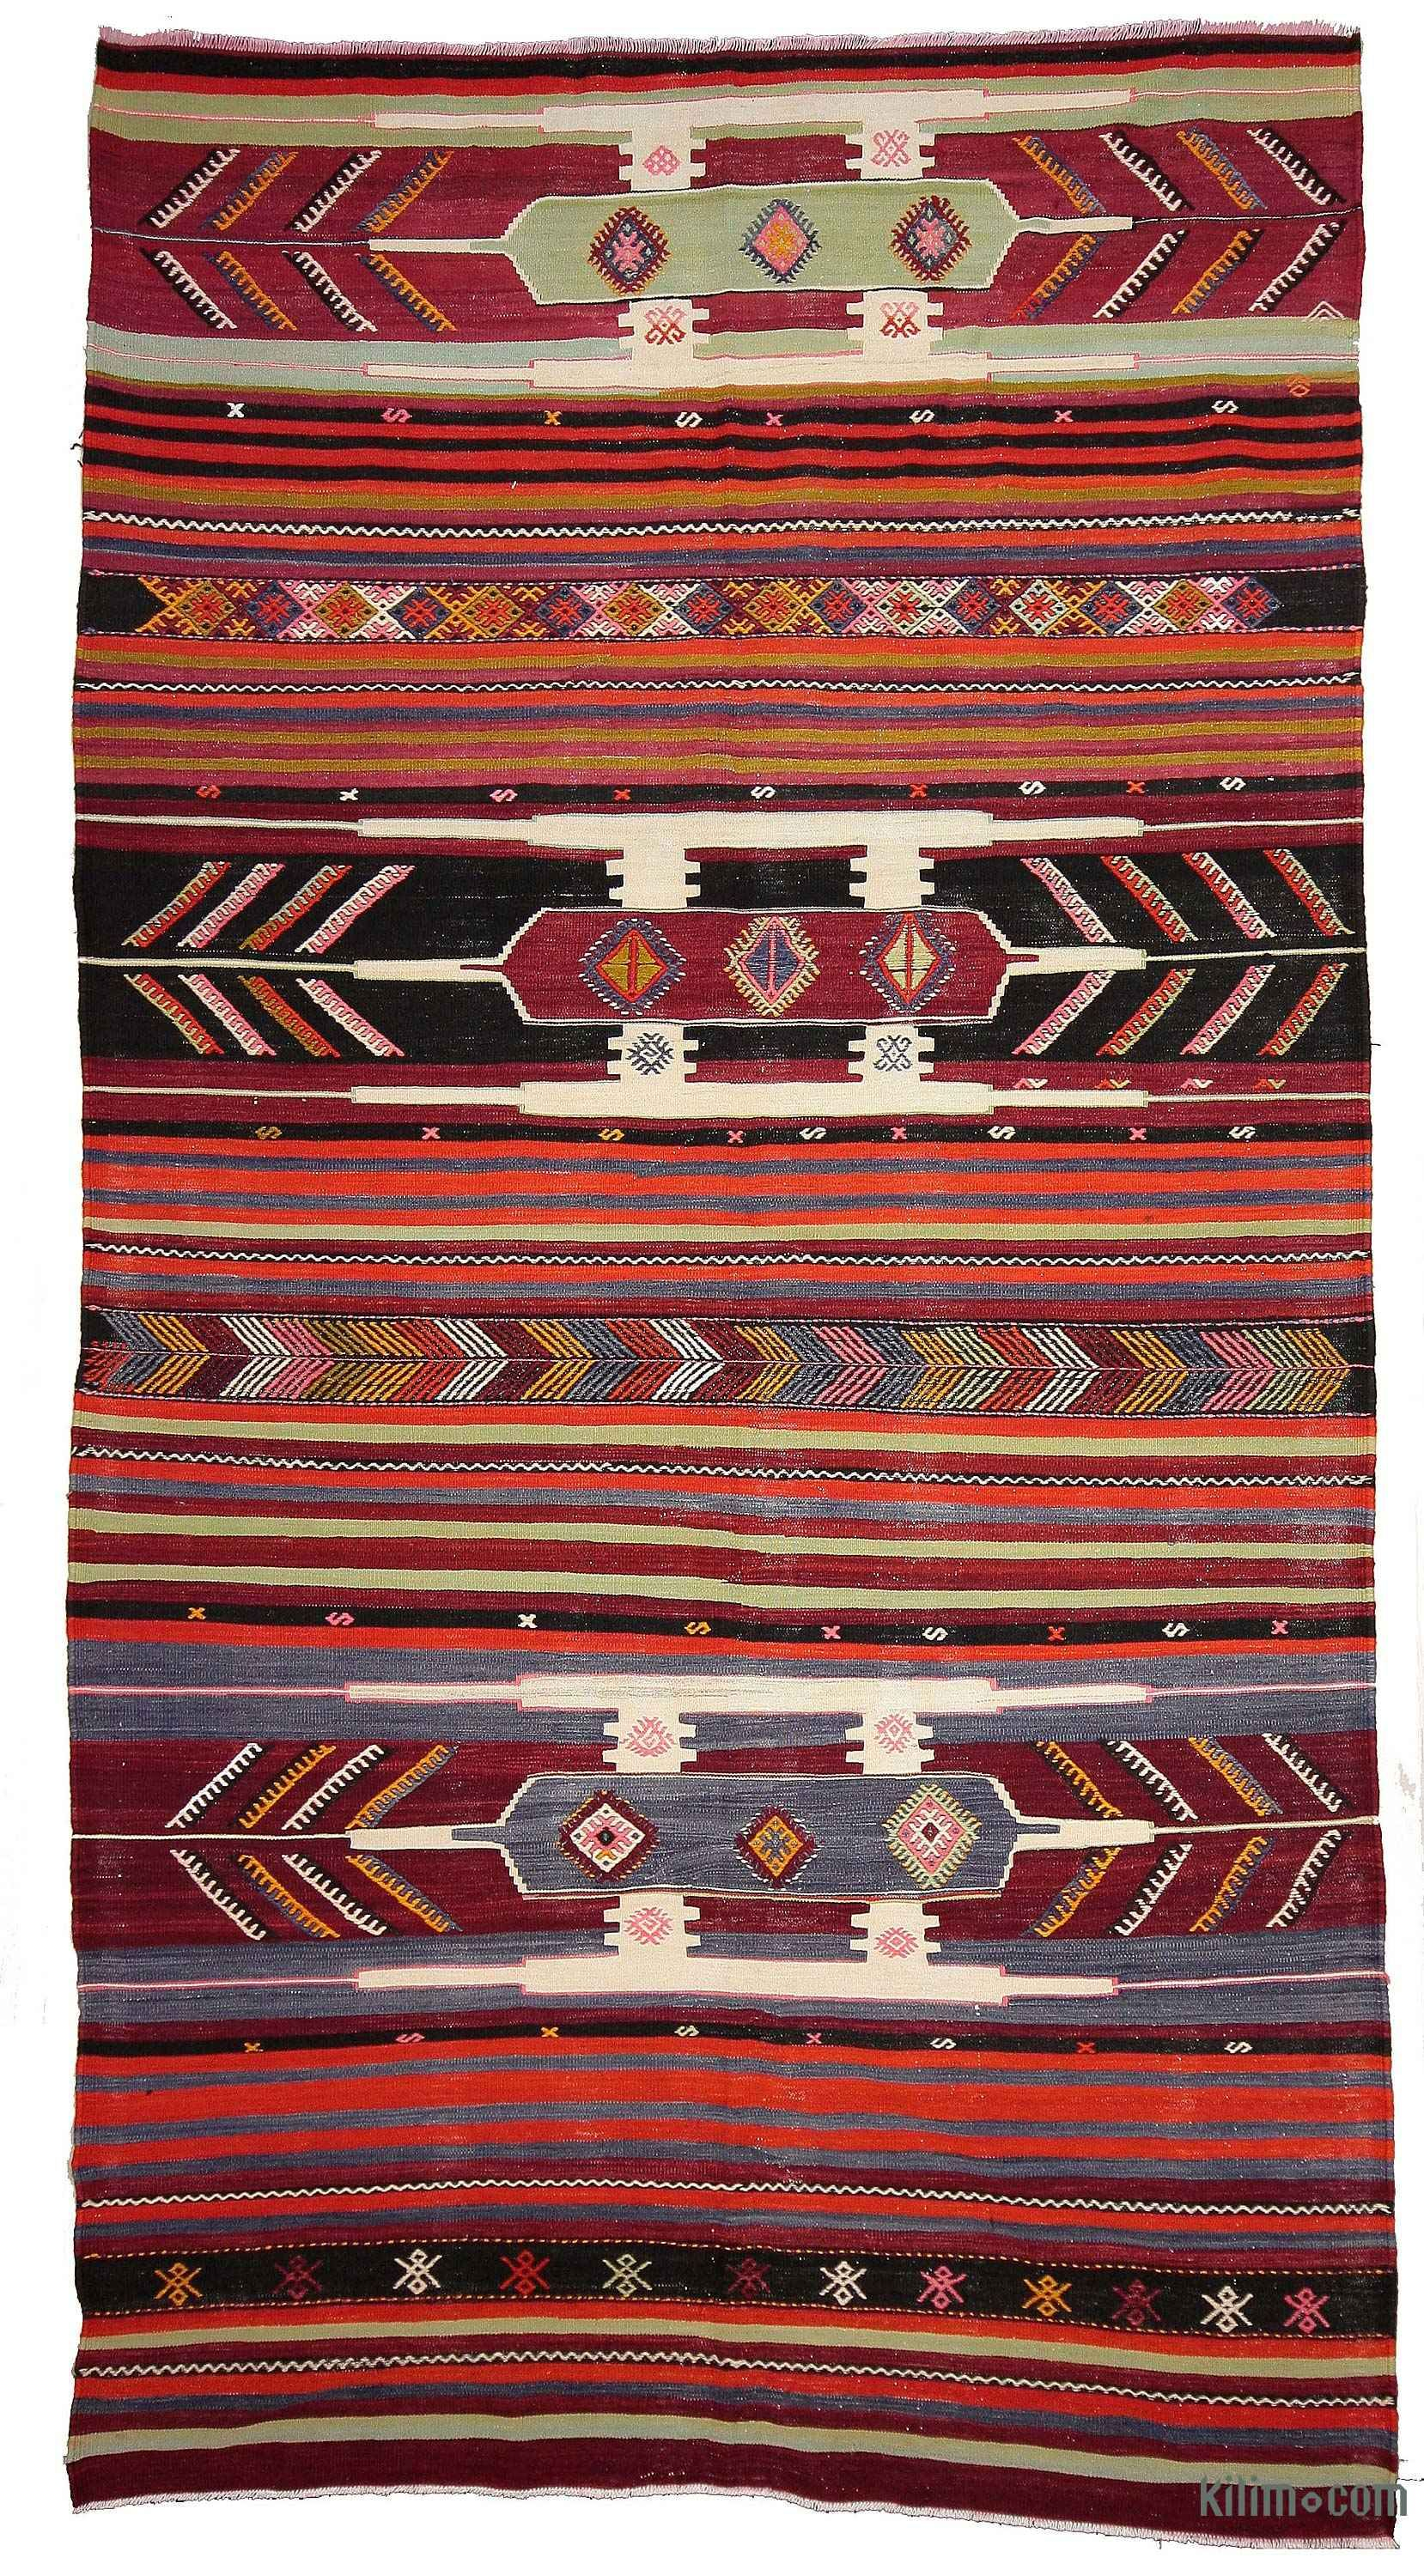 Vintage Turkish Kilim Rug Handwoven In 1960 S In Sivas In Central Anatolia This Tribal Kilim Is In Very Goo Vintage Kilim Rug Overdyed Vintage Rugs Kilim Rugs